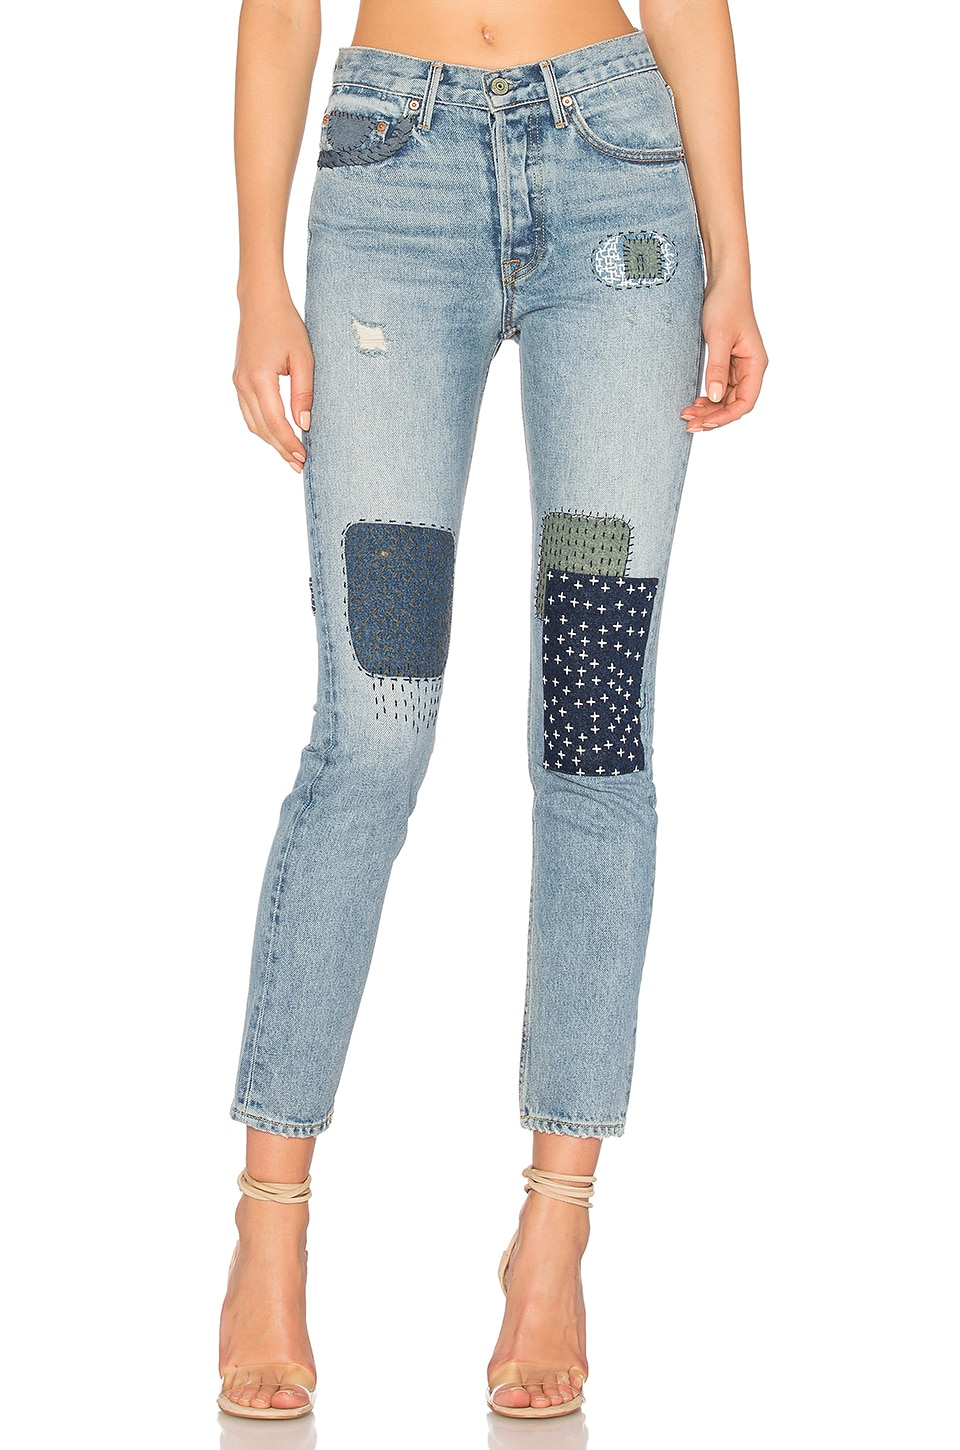 GRLFRND x REVOLVE Karolina High-Rise Skinny Jean in One Bad Apple